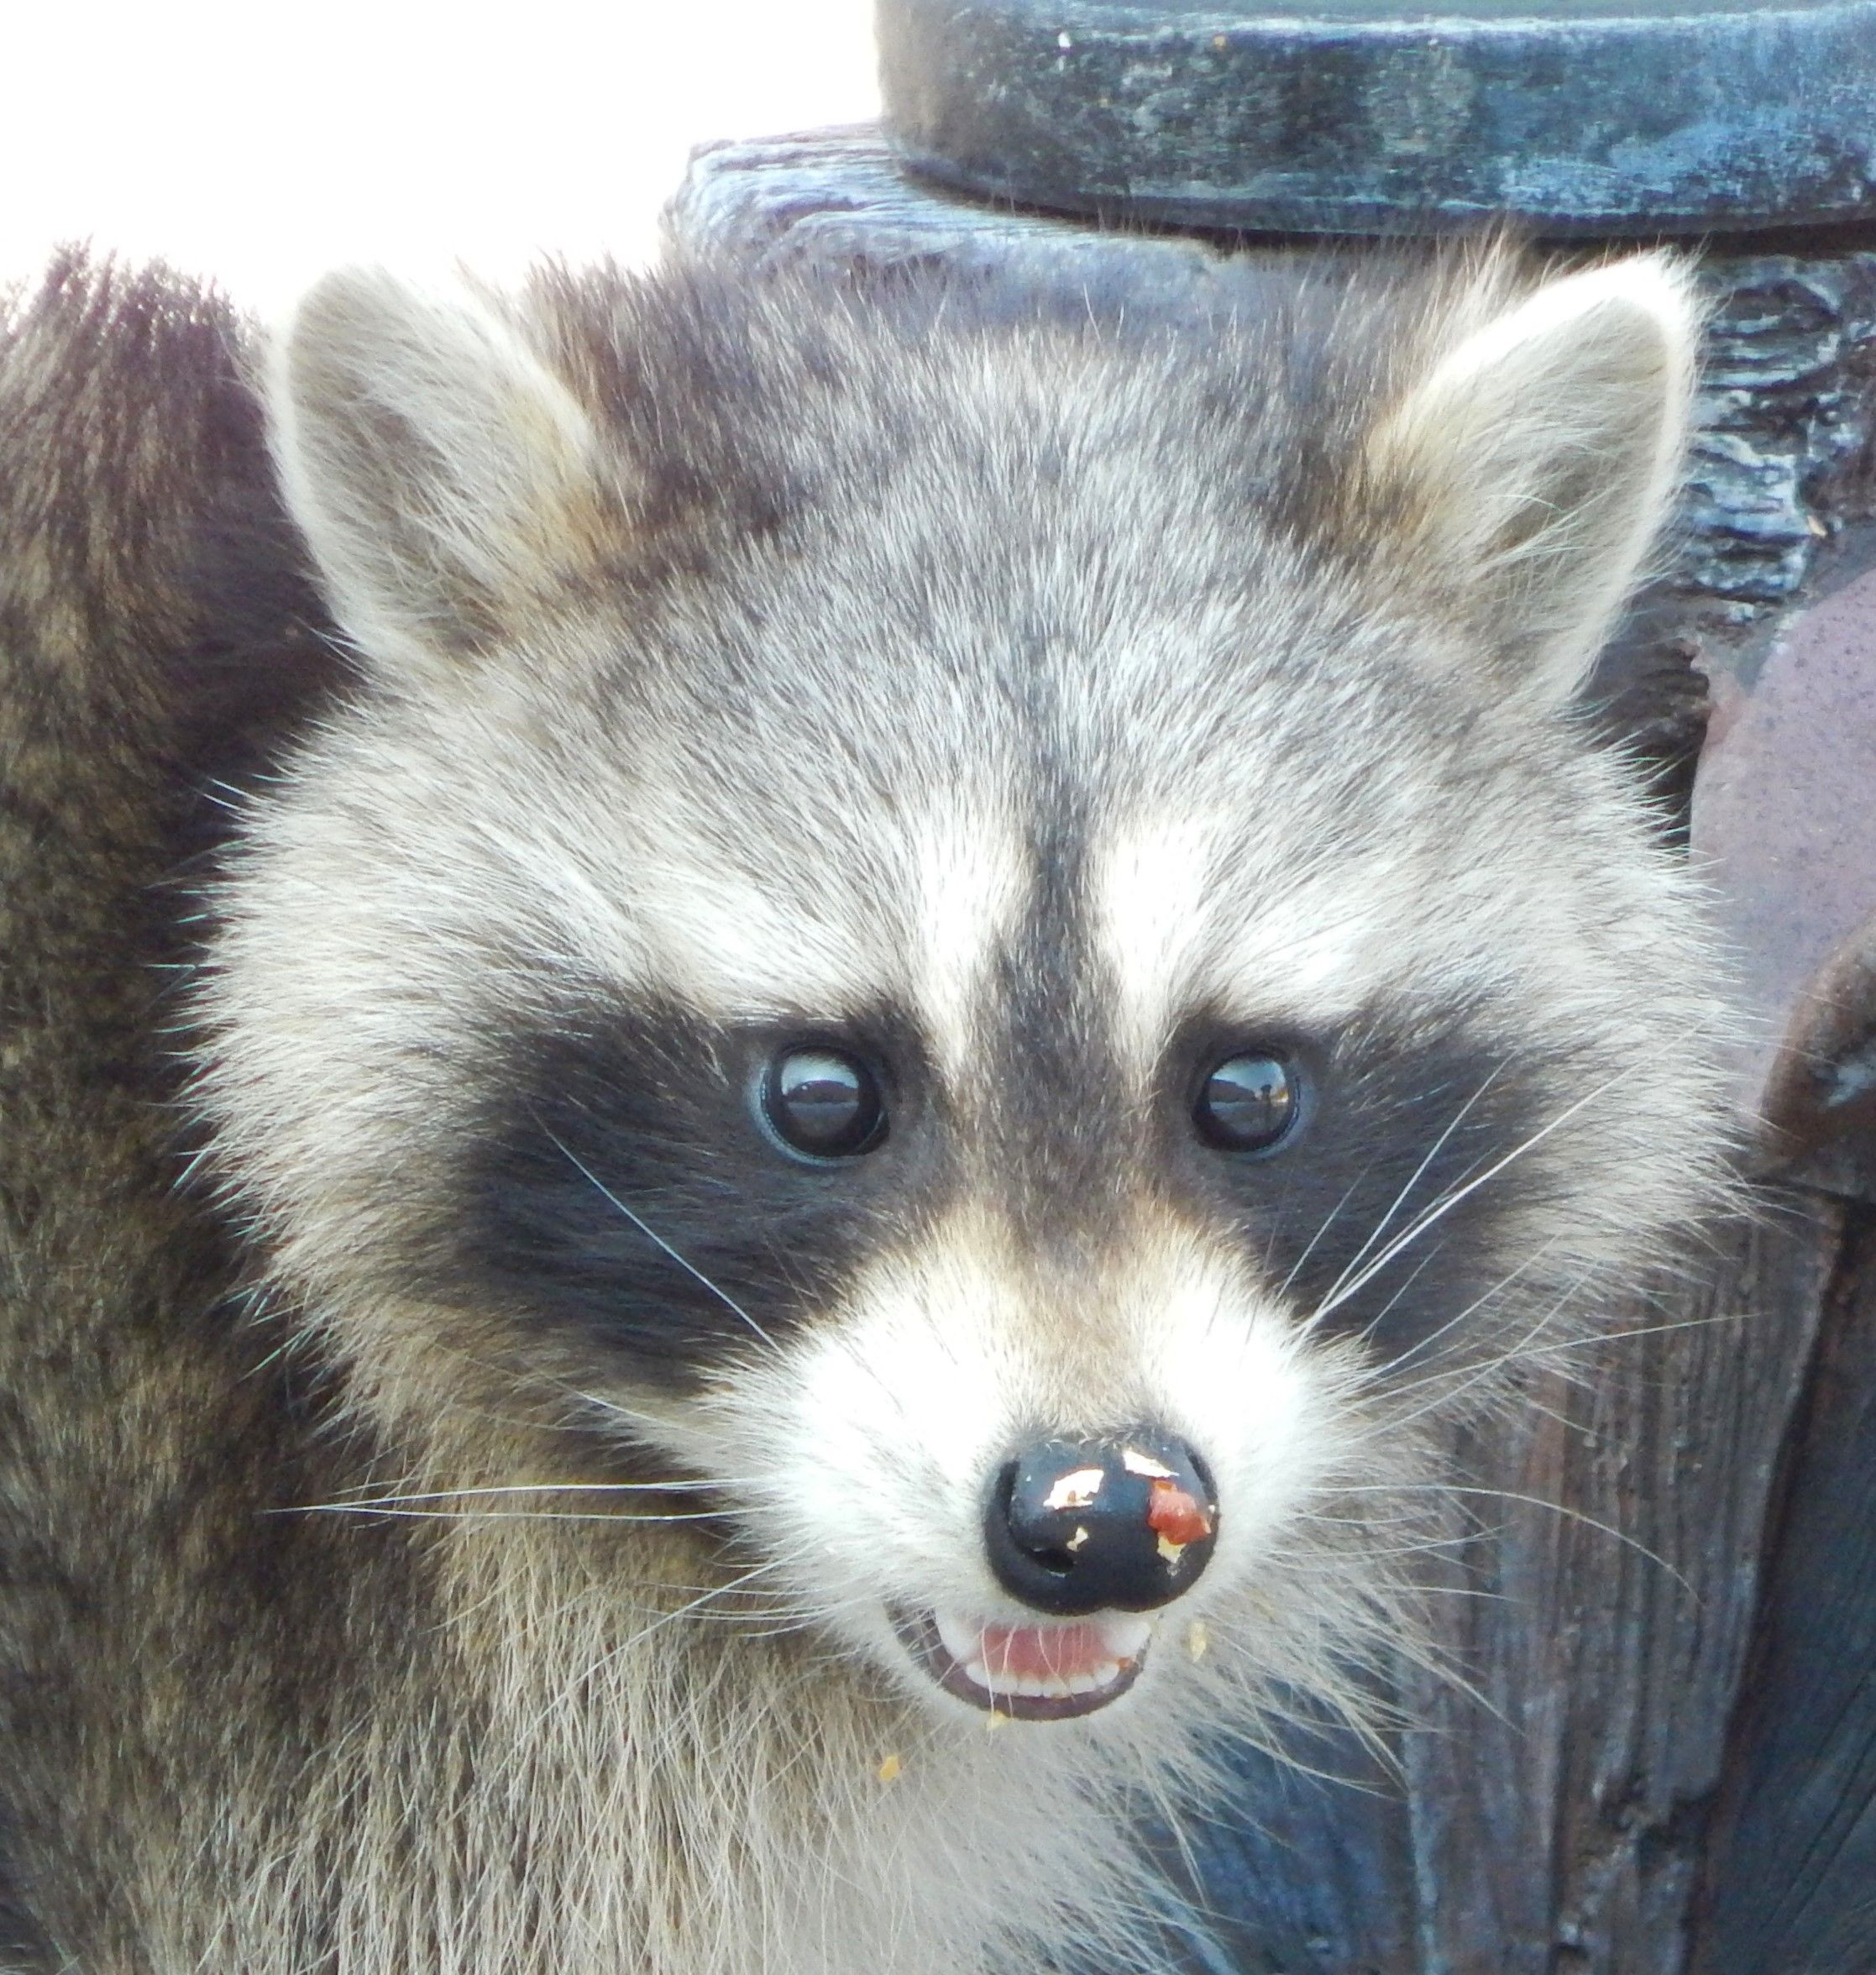 raccoon eating peanuts in our backyard just look at that face